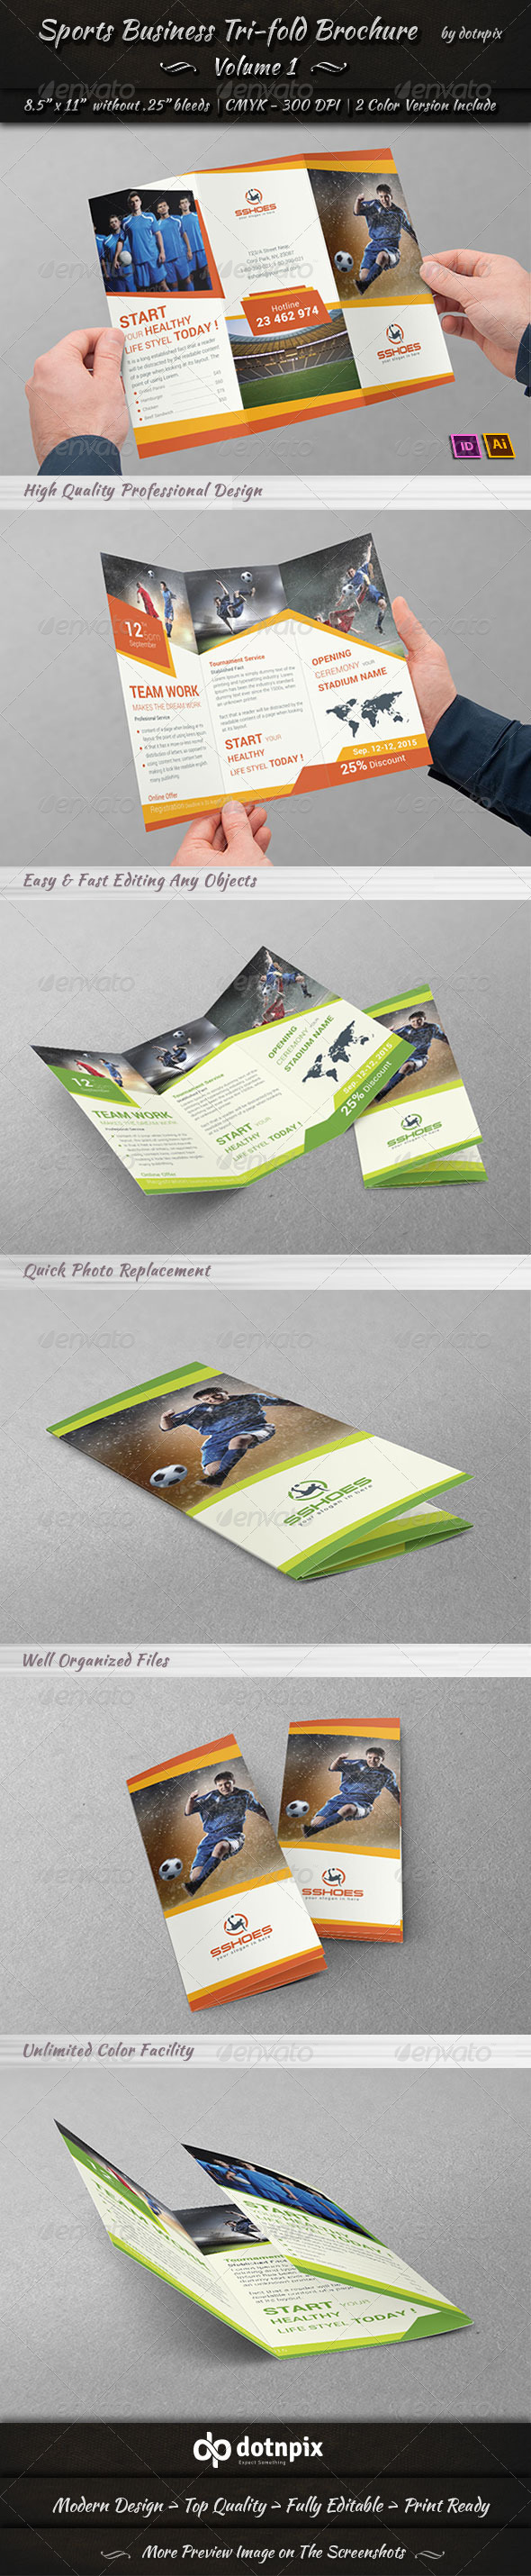 Sports Business TriFold Brochure Volume 1